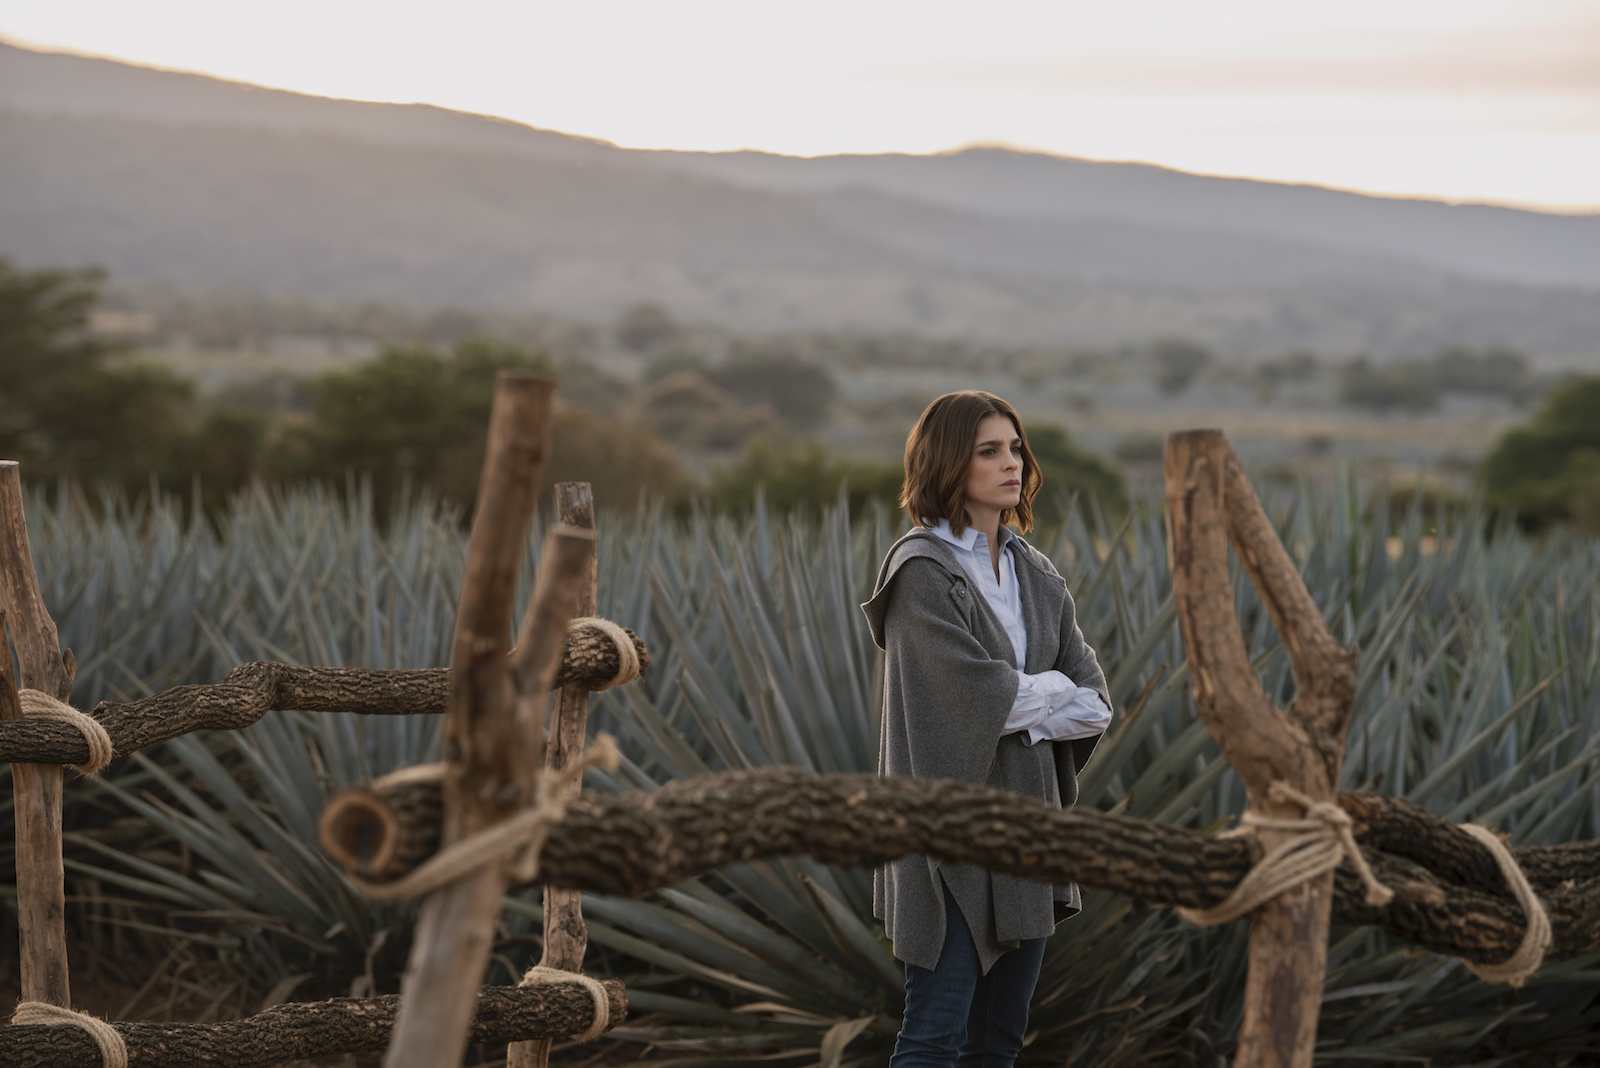 TRAILER: Netflix's No. 1 Series in Mexico, 'Monarca,' Is About a Rich & Corrupt Family